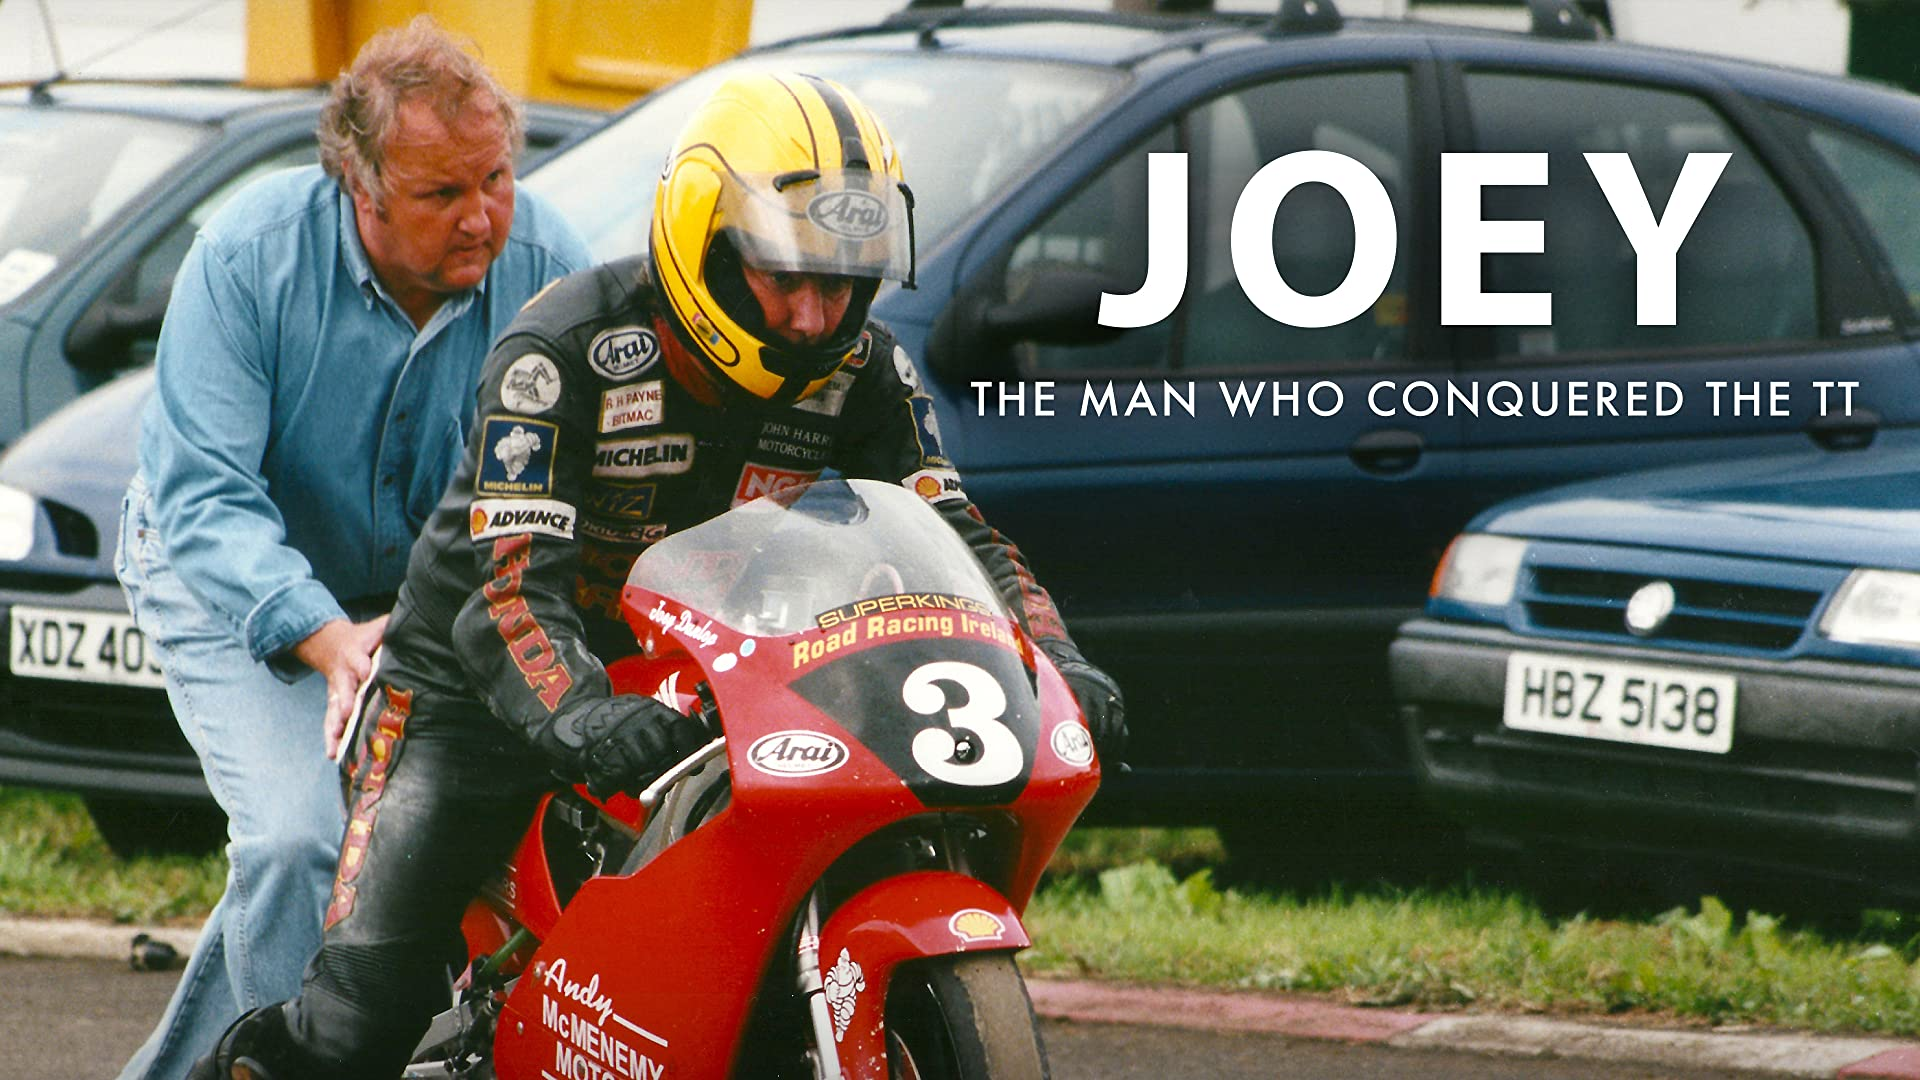 Joey - The Man Who Conquered the TT